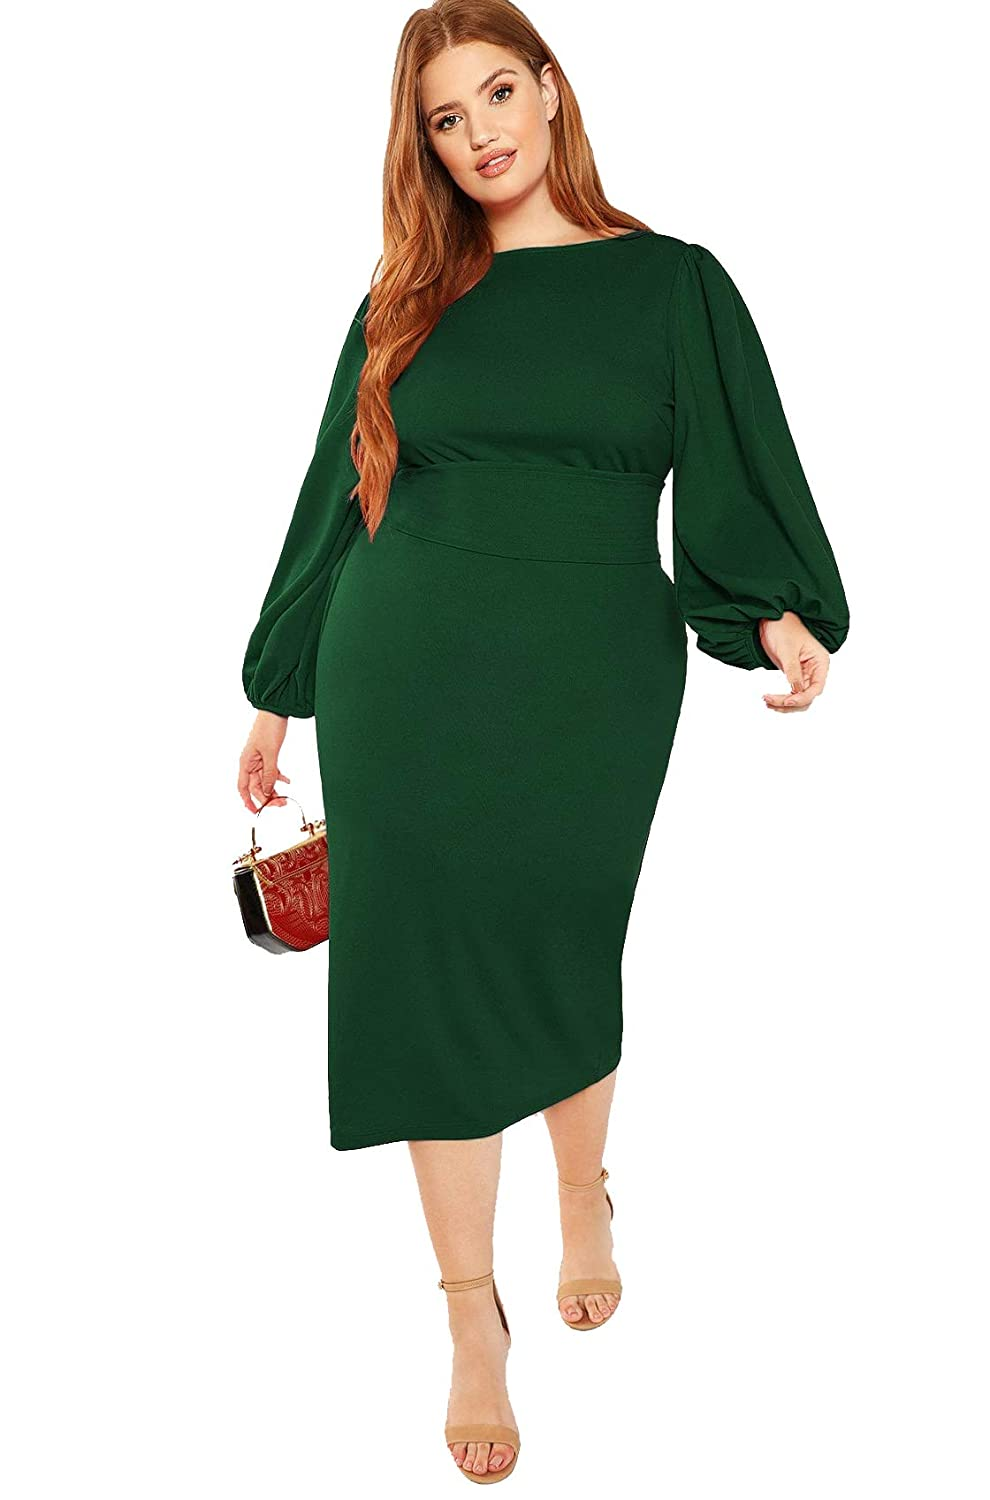 1950s Plus Size Dresses, Swing Dresses Milumia Womens Plus Size Round Neck Long Lantern Sleeve Belted Pencil Dress $39.88 AT vintagedancer.com